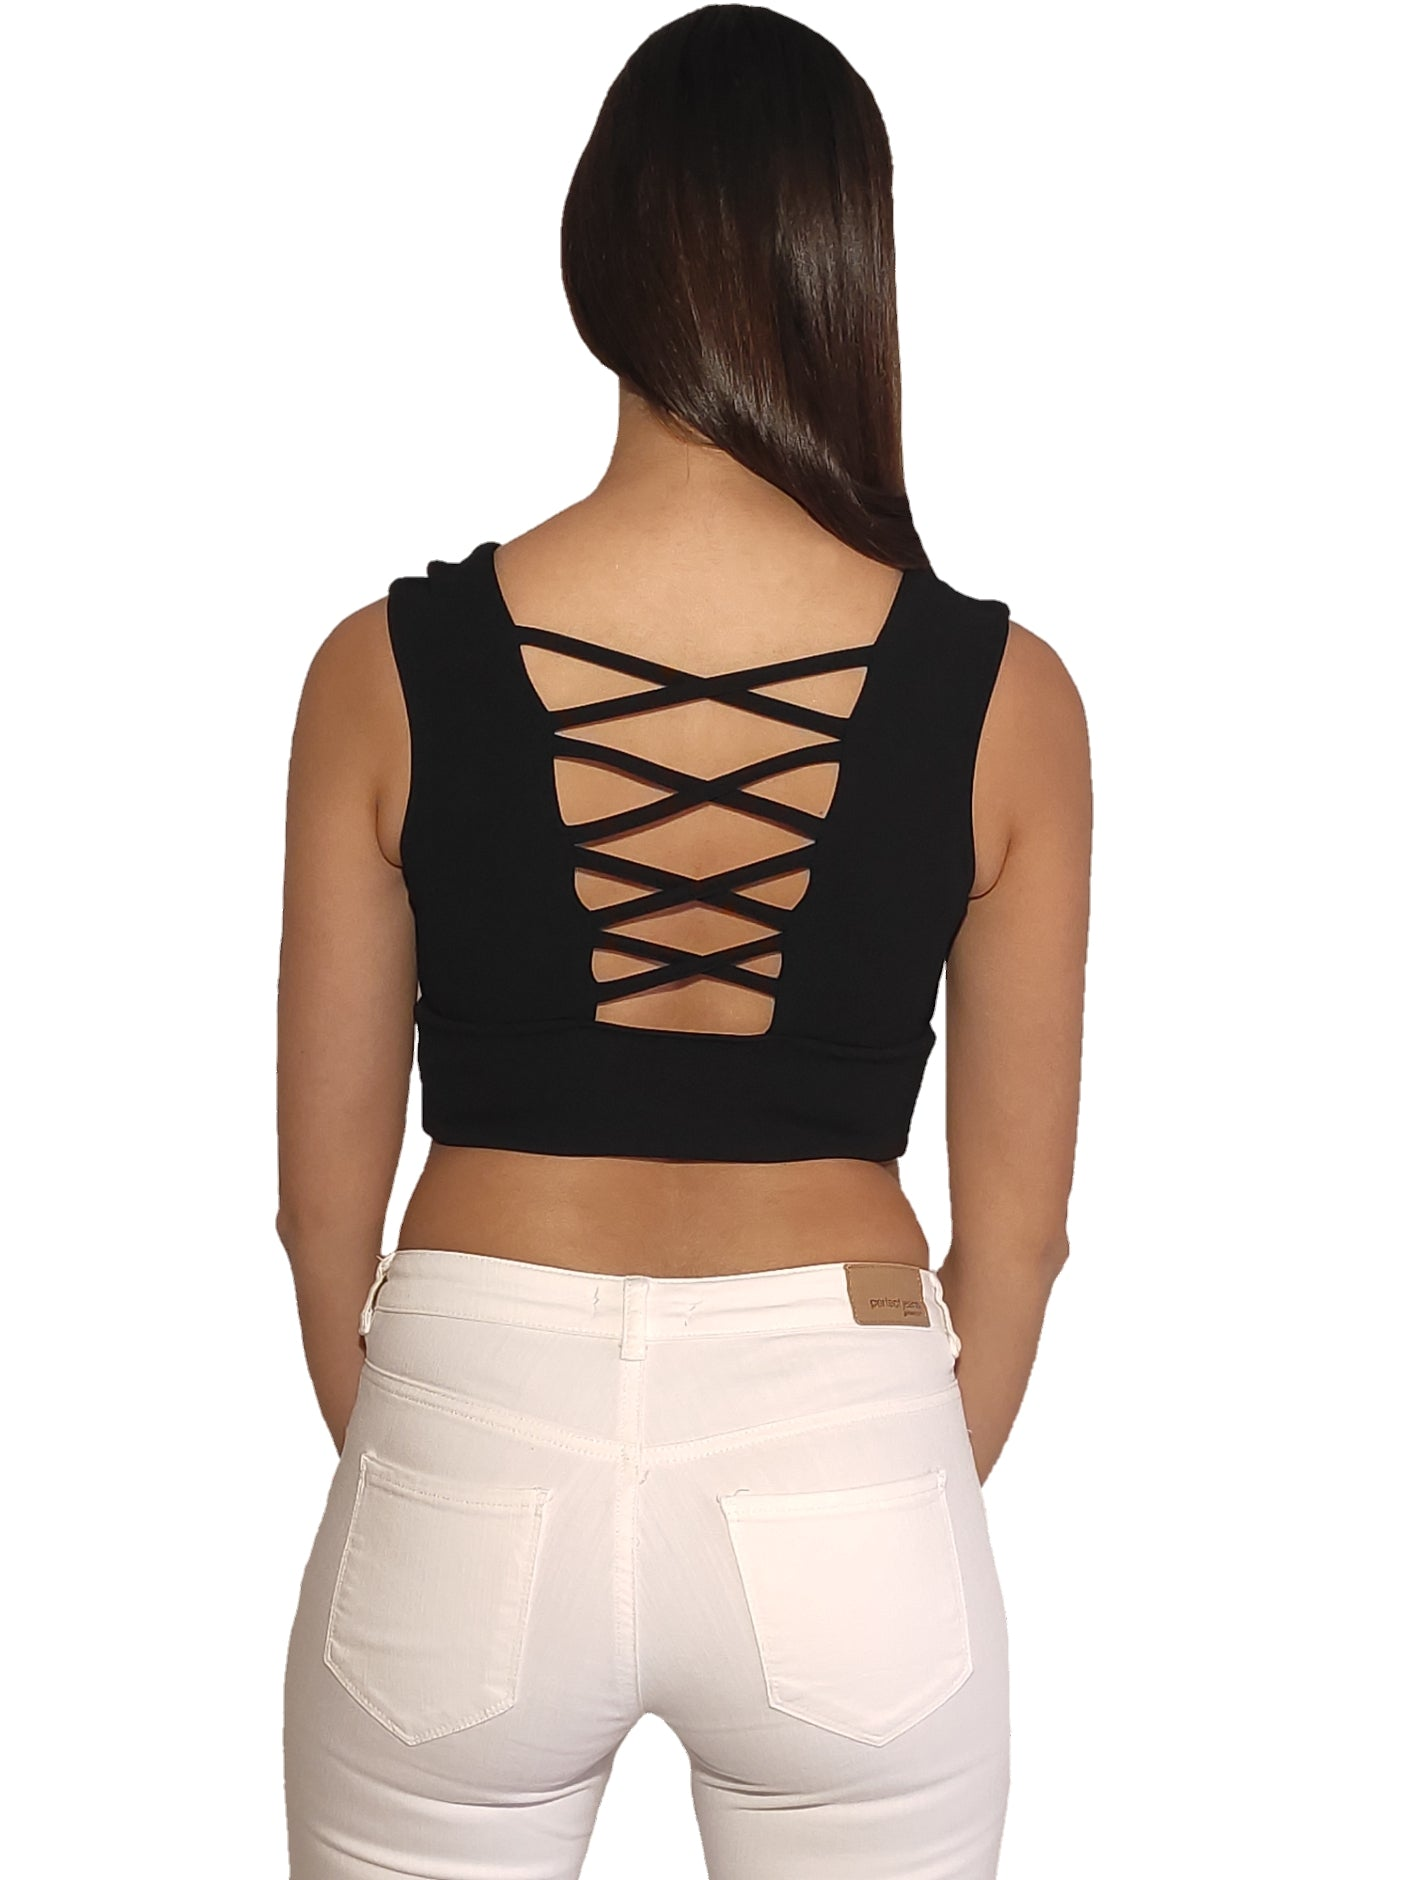 a-woman-wears-black-short-crop-top-with-V-neck-back